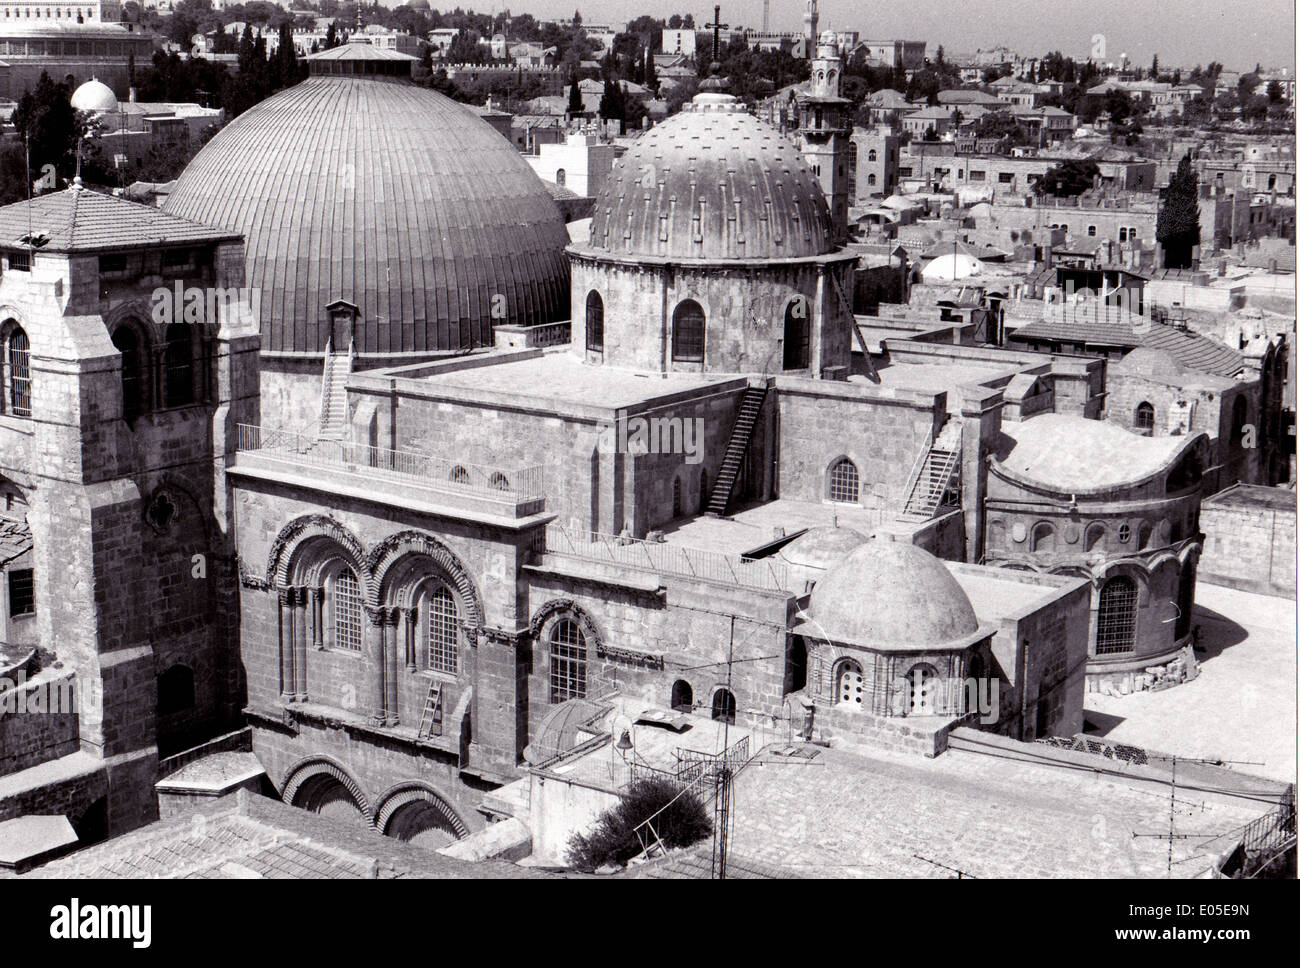 Exterior view of the Church of the Holy Sepulchre, Jerusalem - Stock Image